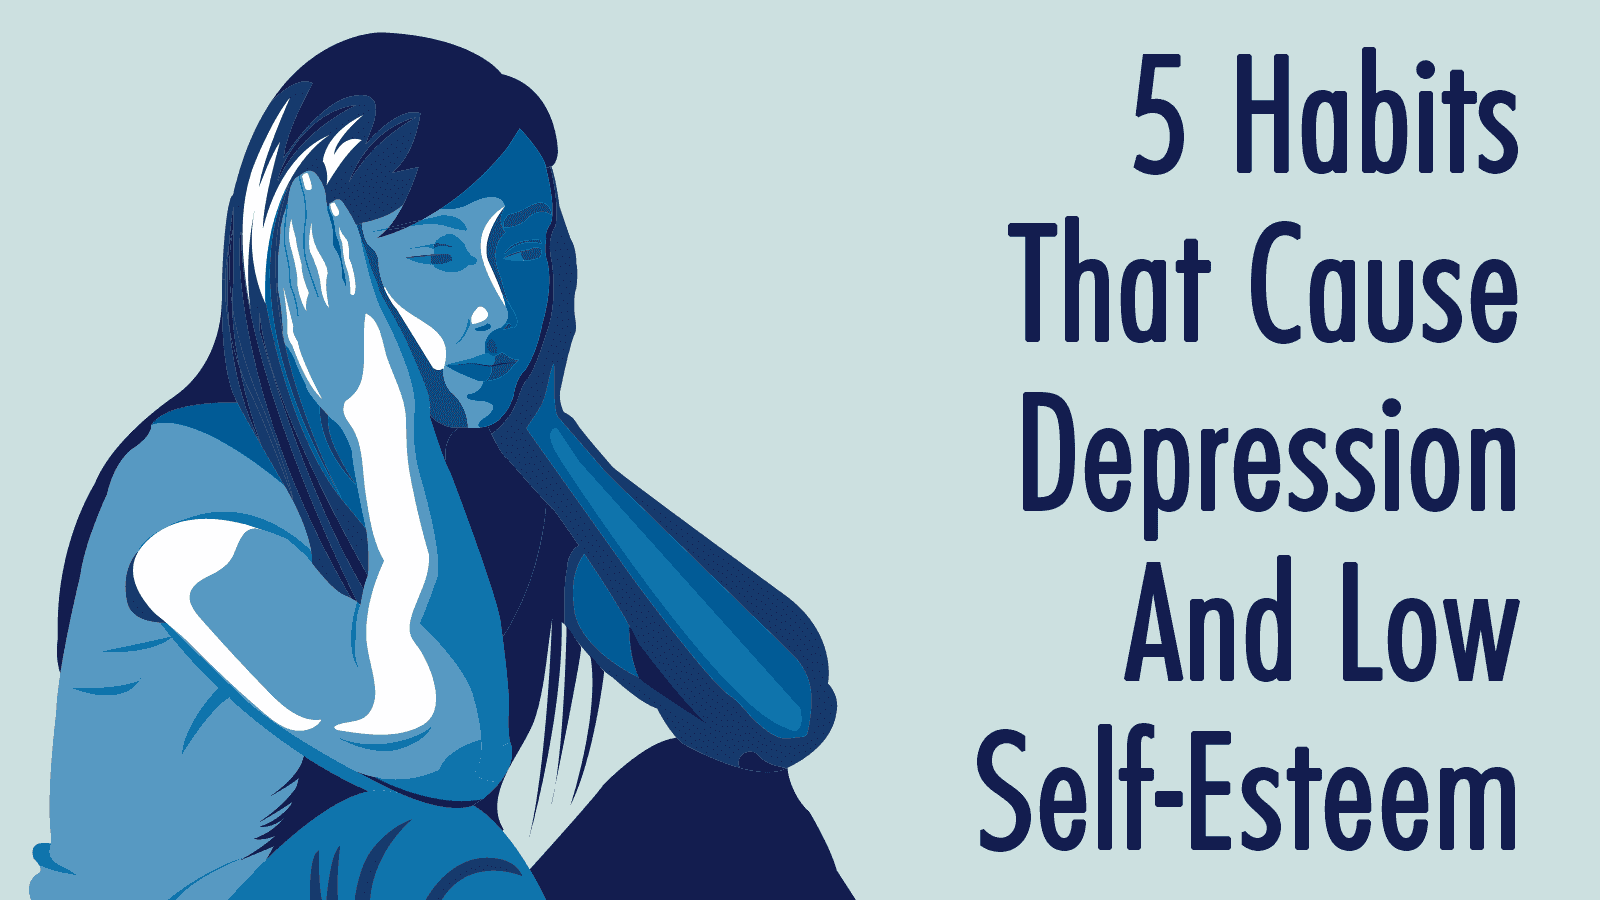 Power Of Negative Thinking >> 5 Habits That Cause Depression And Low Self-Esteem